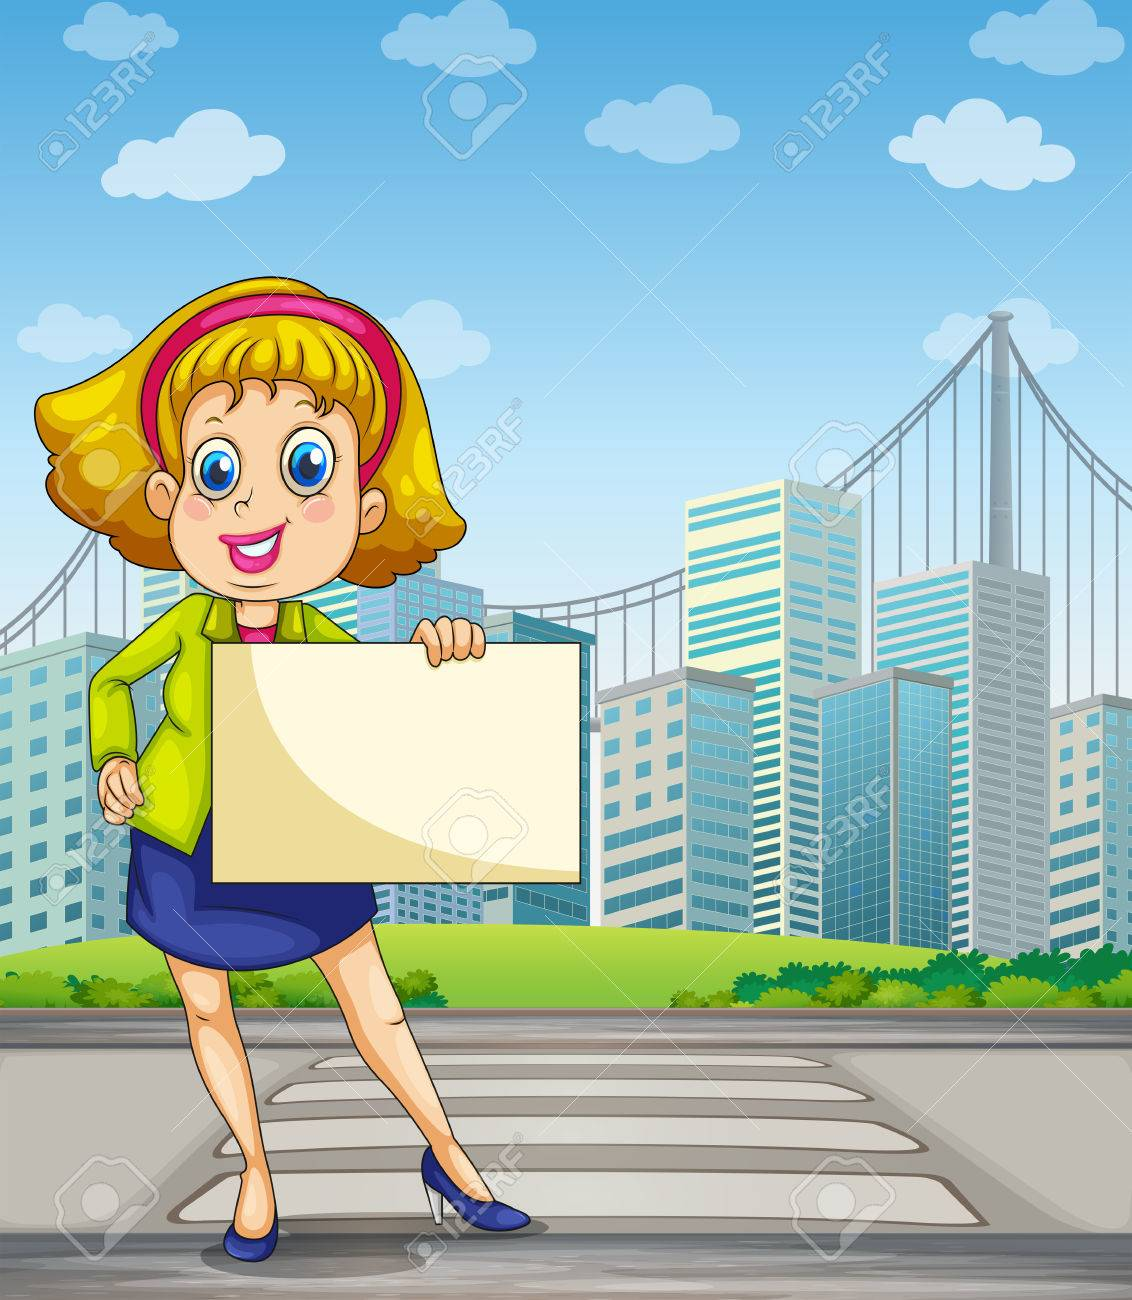 Illustration of a woman at the pedestrian lane holding an empty signage Stock Vector - 22405281